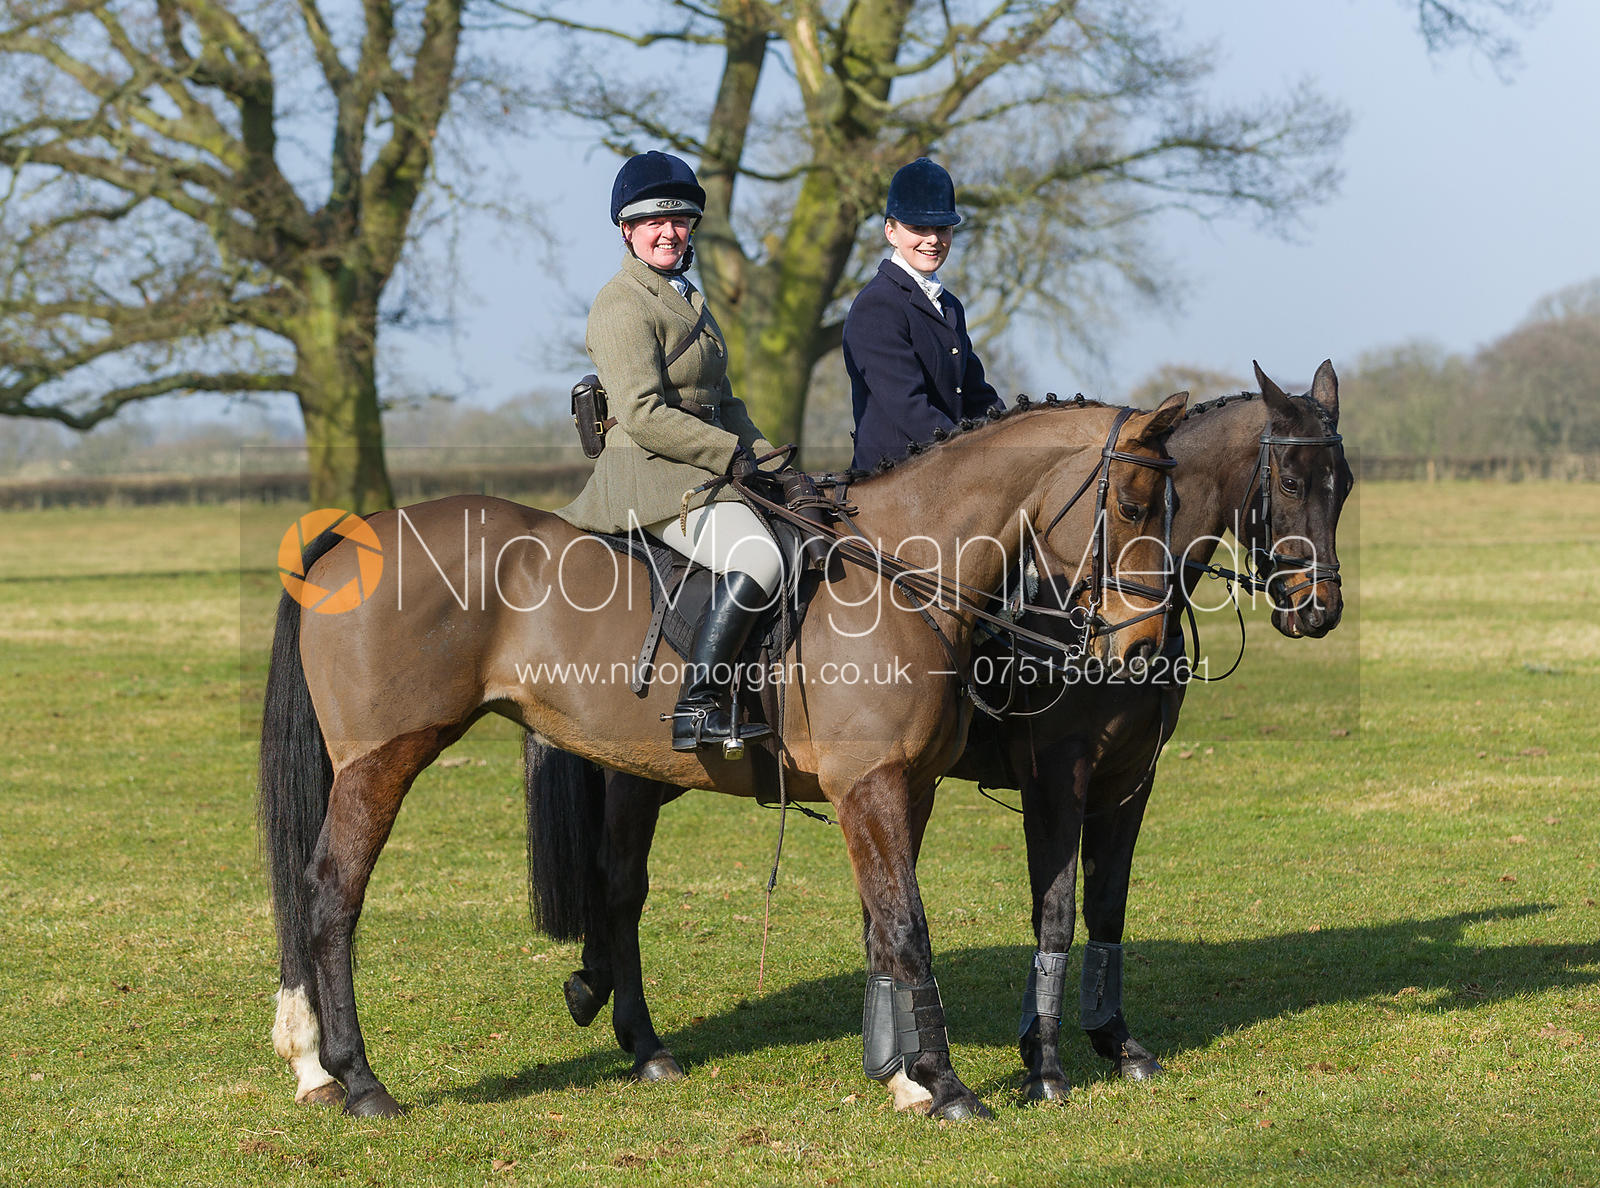 Caroline Harrison and Helen Lovegrove at the meet at Goadby Marwood Hall